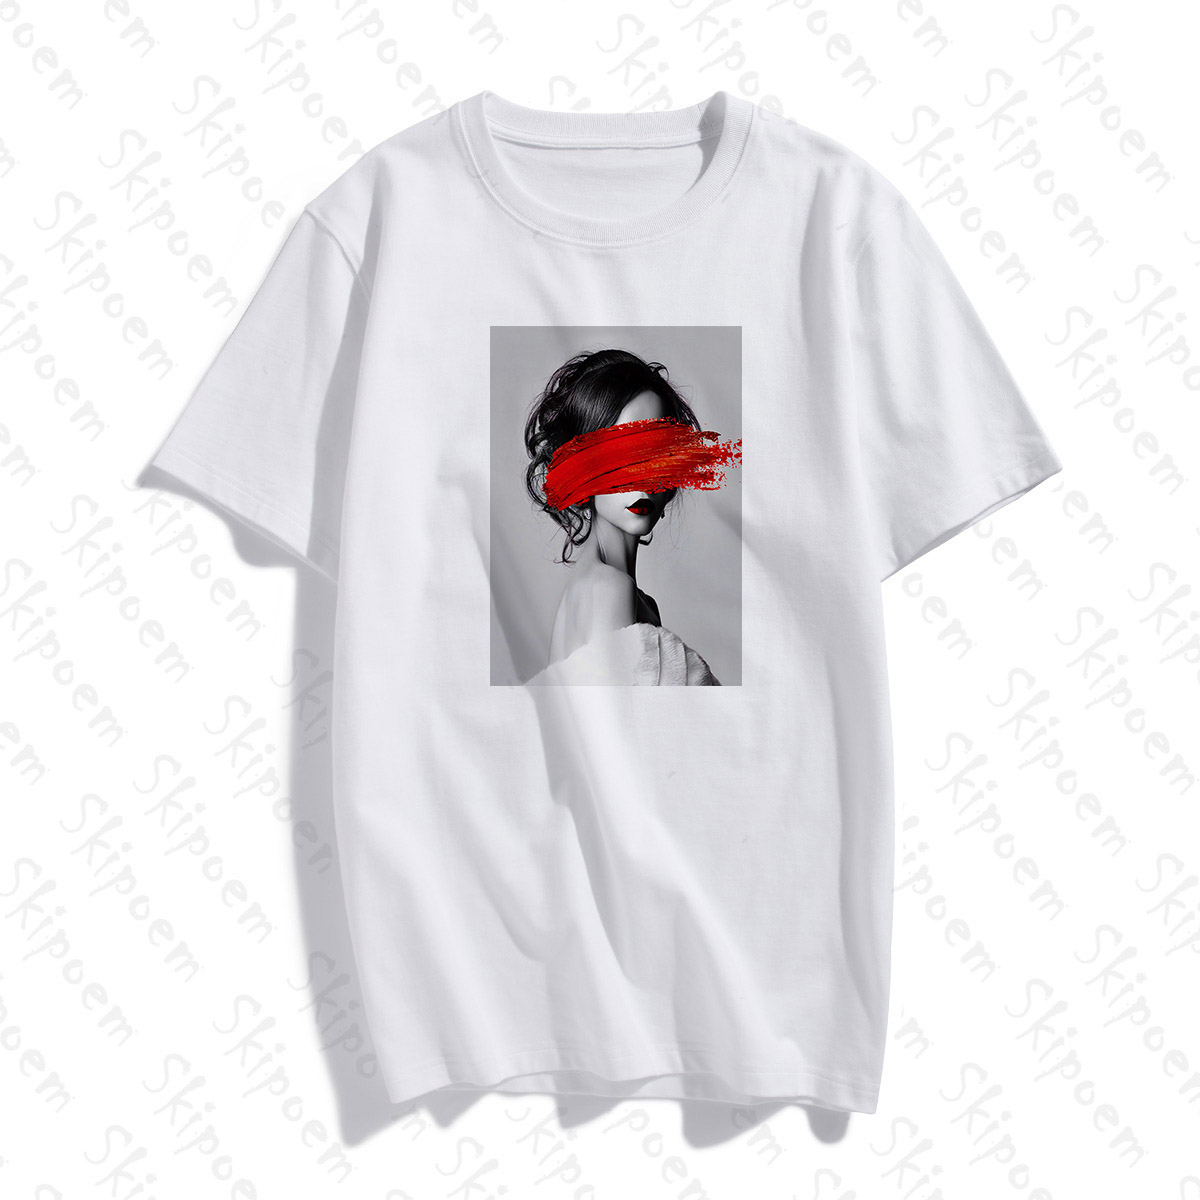 Fashion Lovely Personality Woman Nordic Vintage Art T Shirt Women Punk Harajuku Short Sleeve Cotton Plus Size Streetwear Clothes